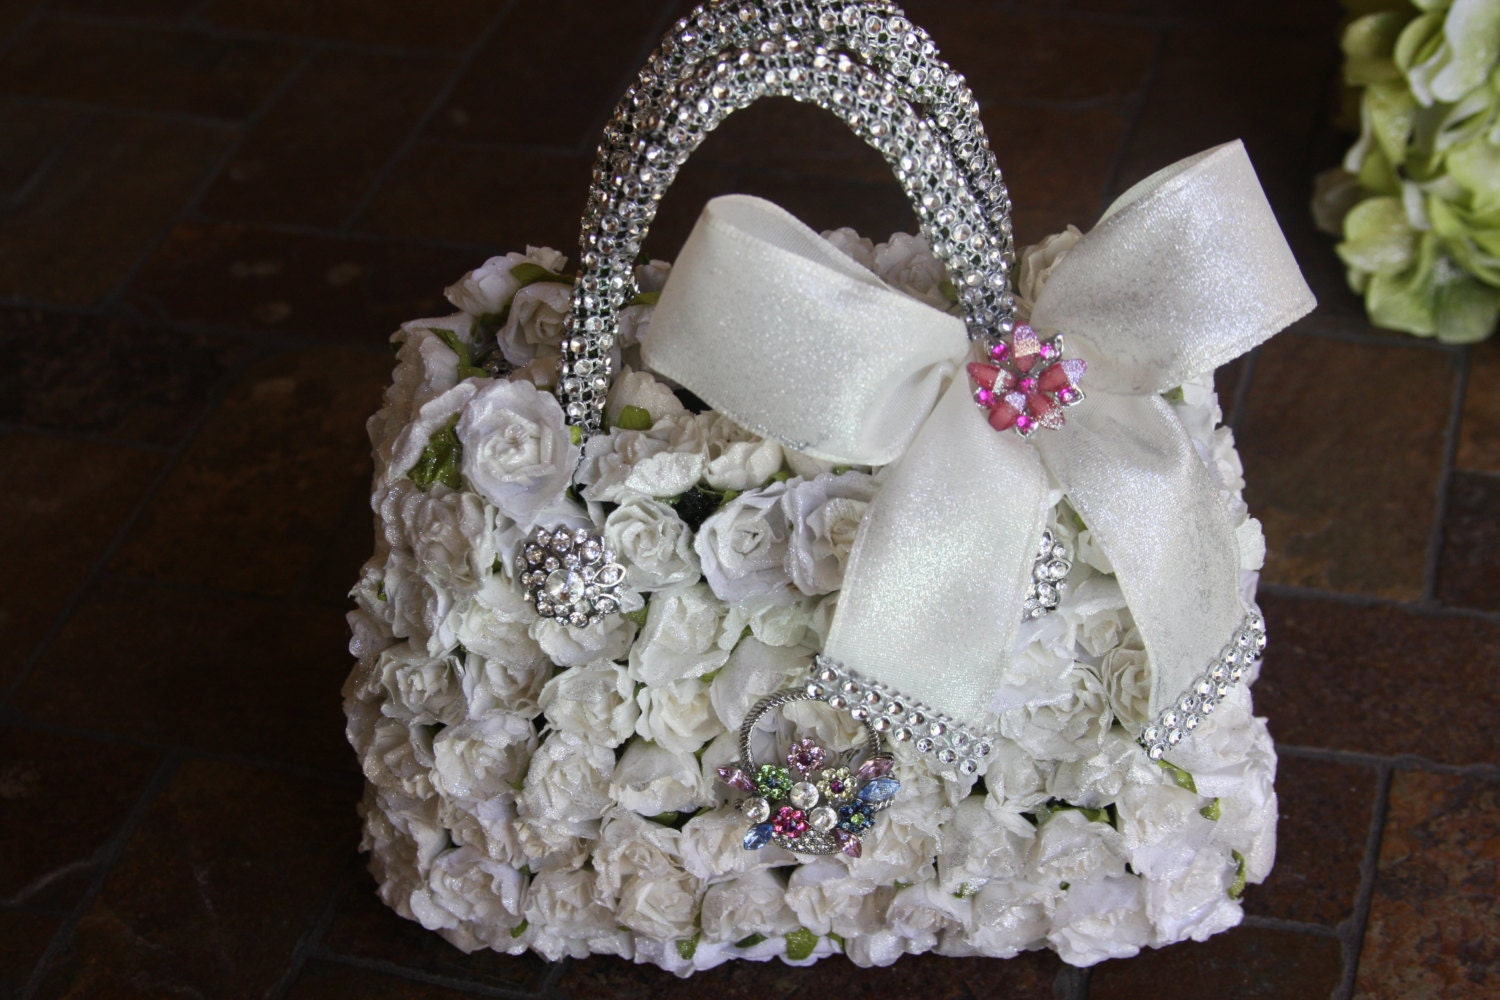 Flower Girl Baskets How To Make : White flower girl basket with paper roses and brooches for